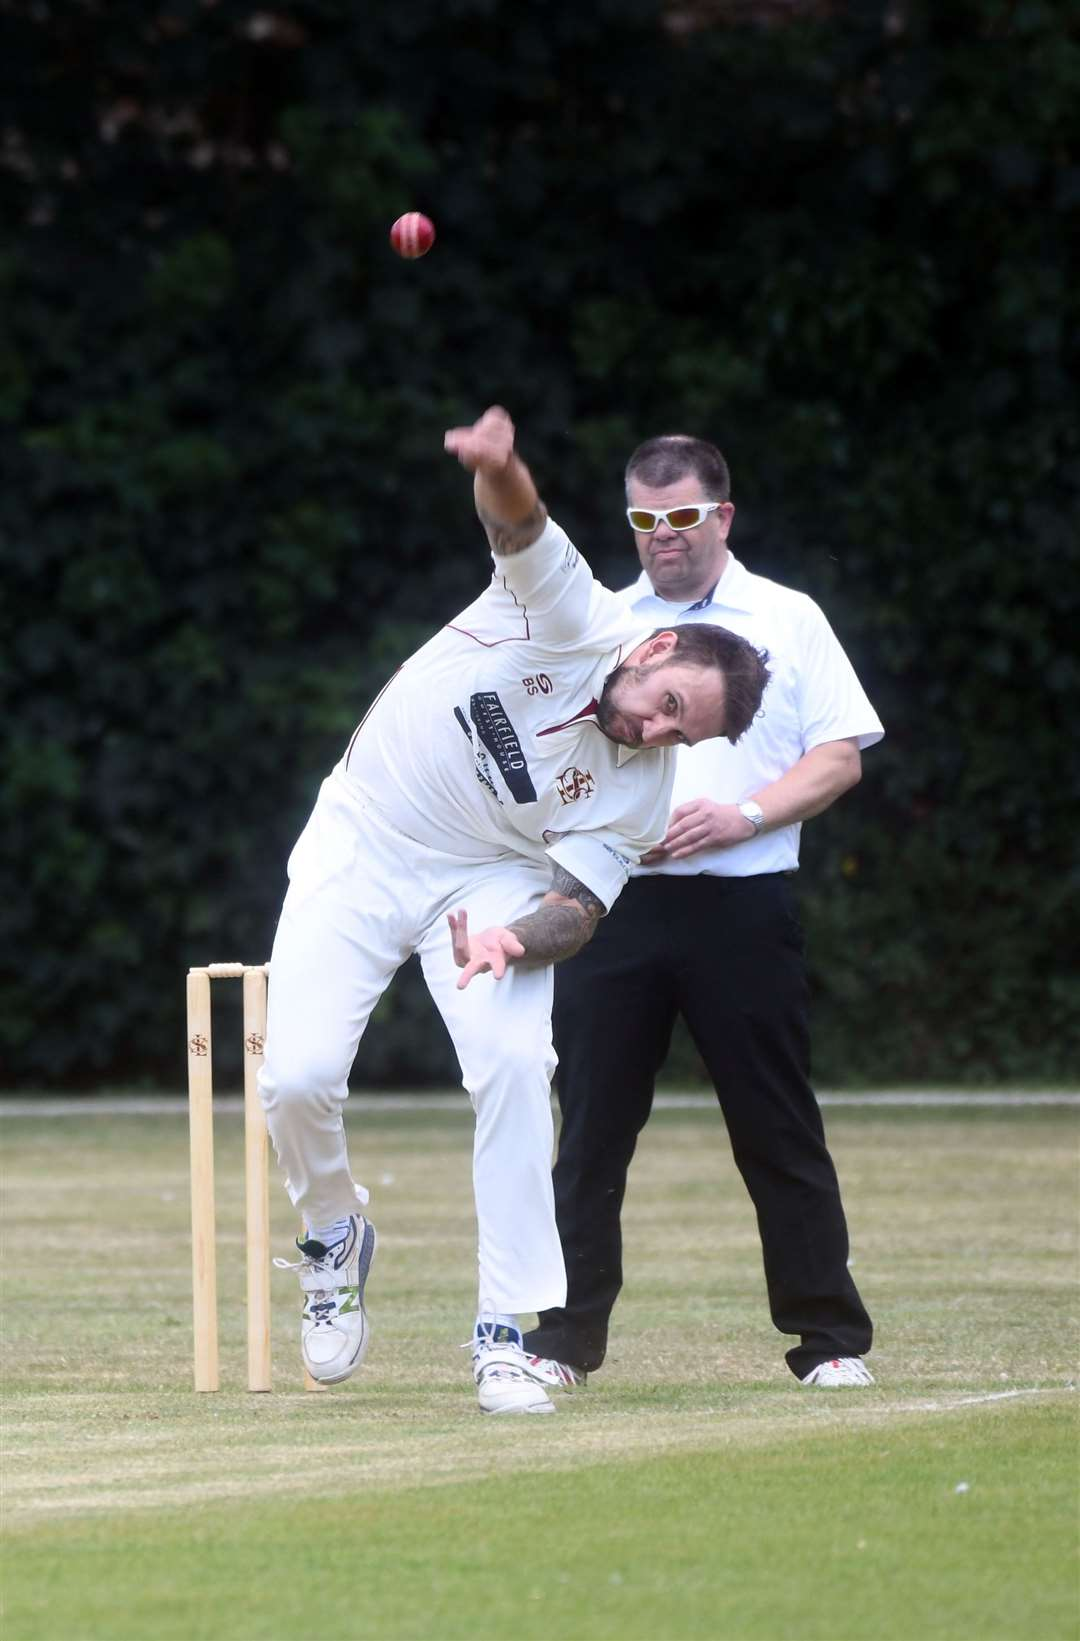 Barry Stanway bowling for Long Sutton.